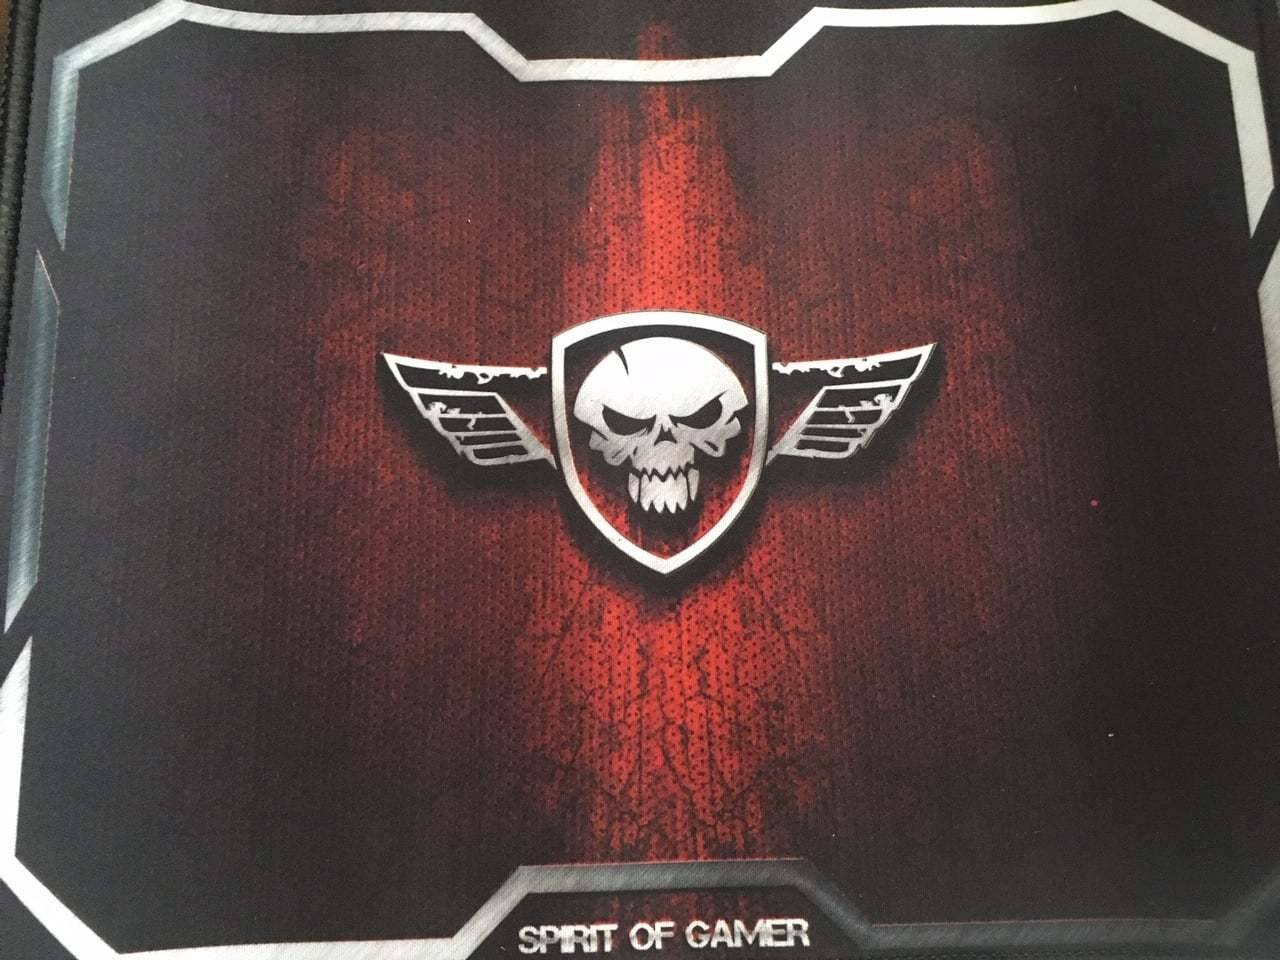 Test et avis du tapis de souris Red Winged Skull de Spirit Of Gamer